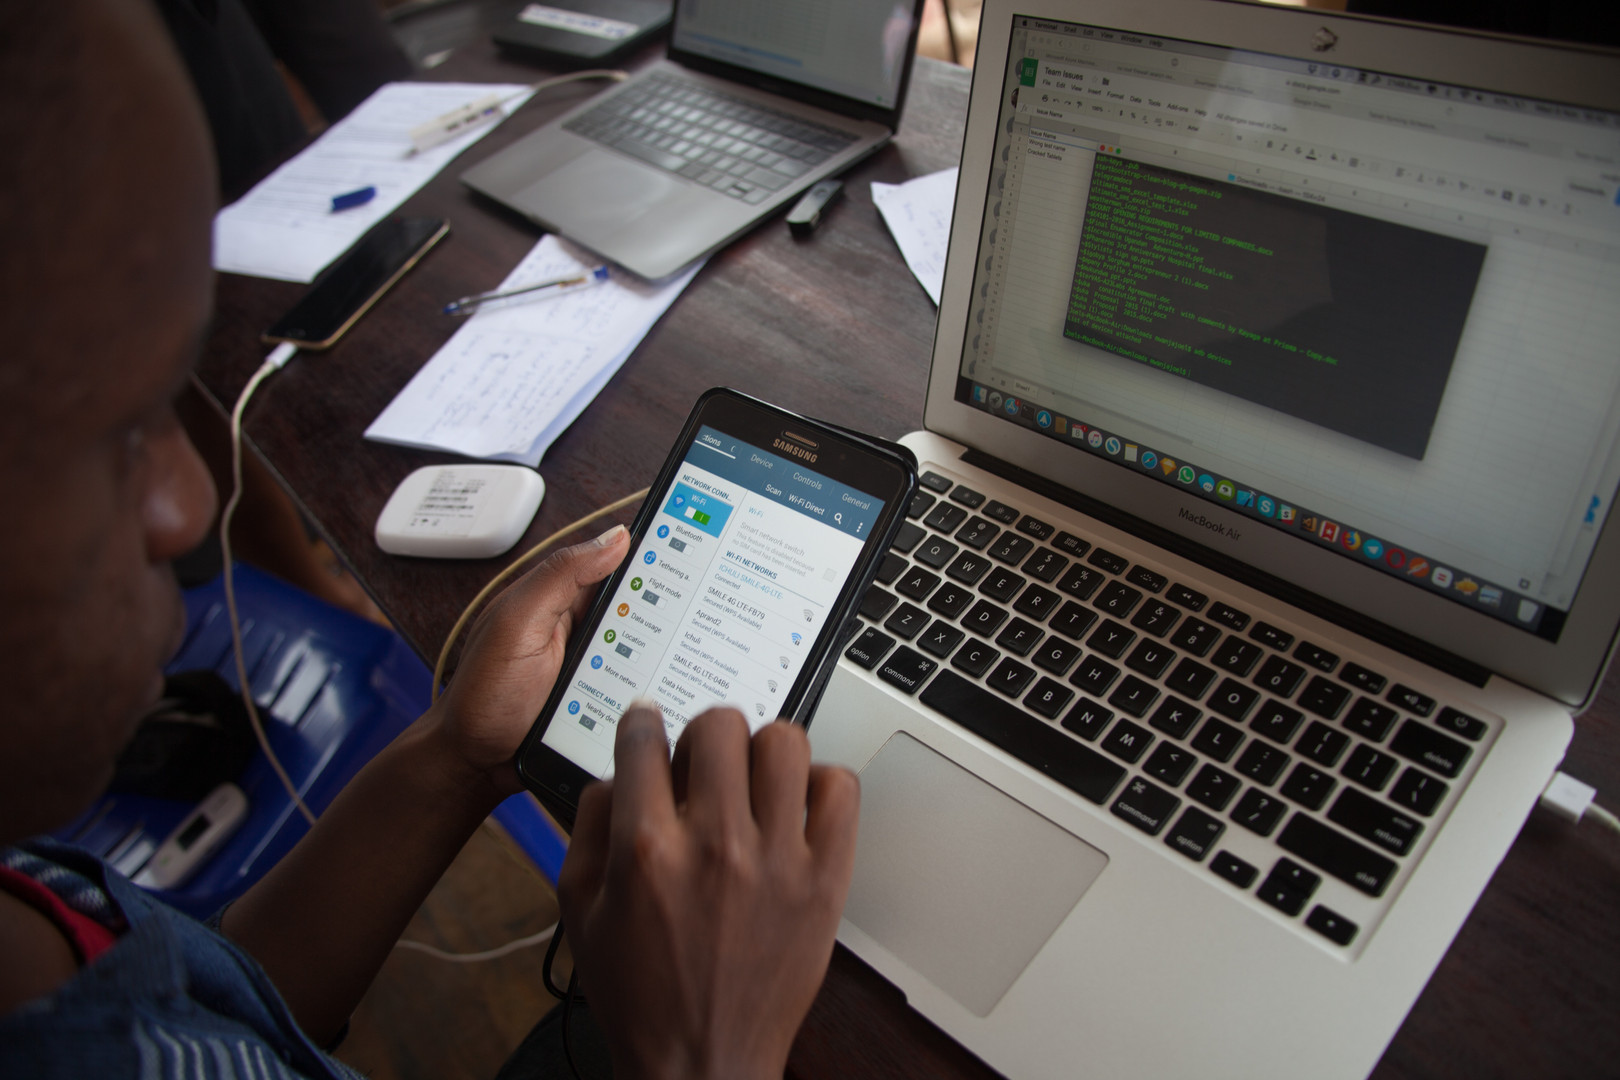 At the end of each day, enumerators upload their data to one of the main computers.